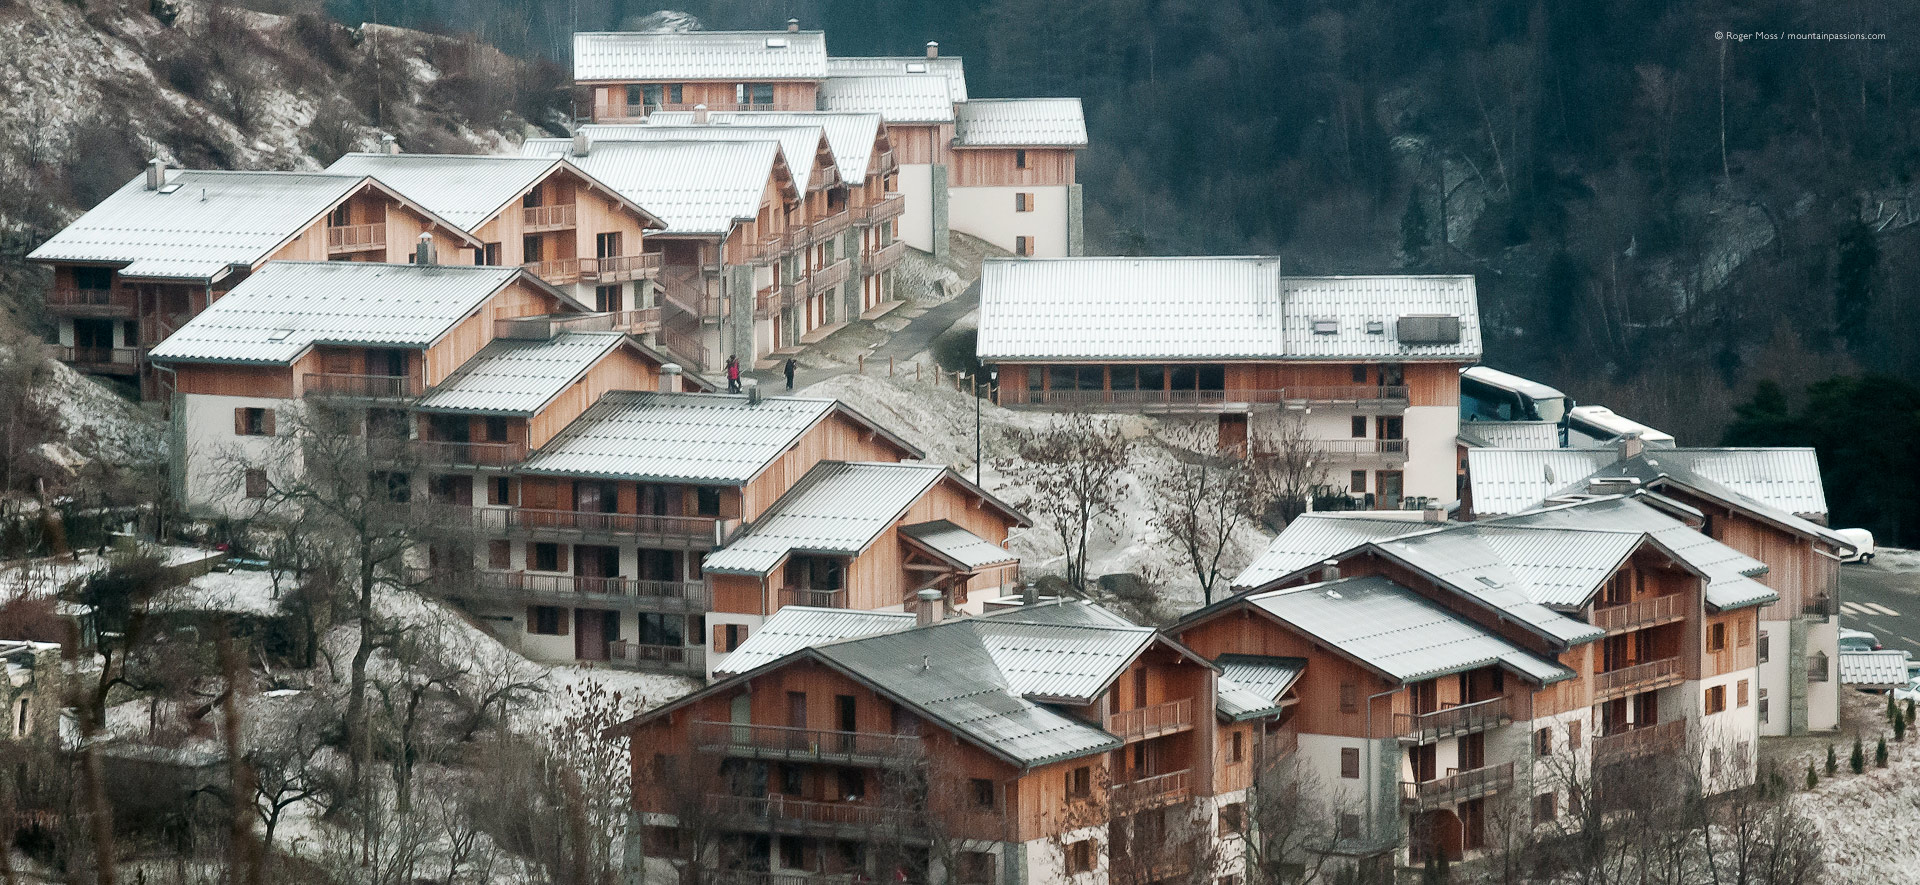 View from gondola lift of chalet-style apartment development